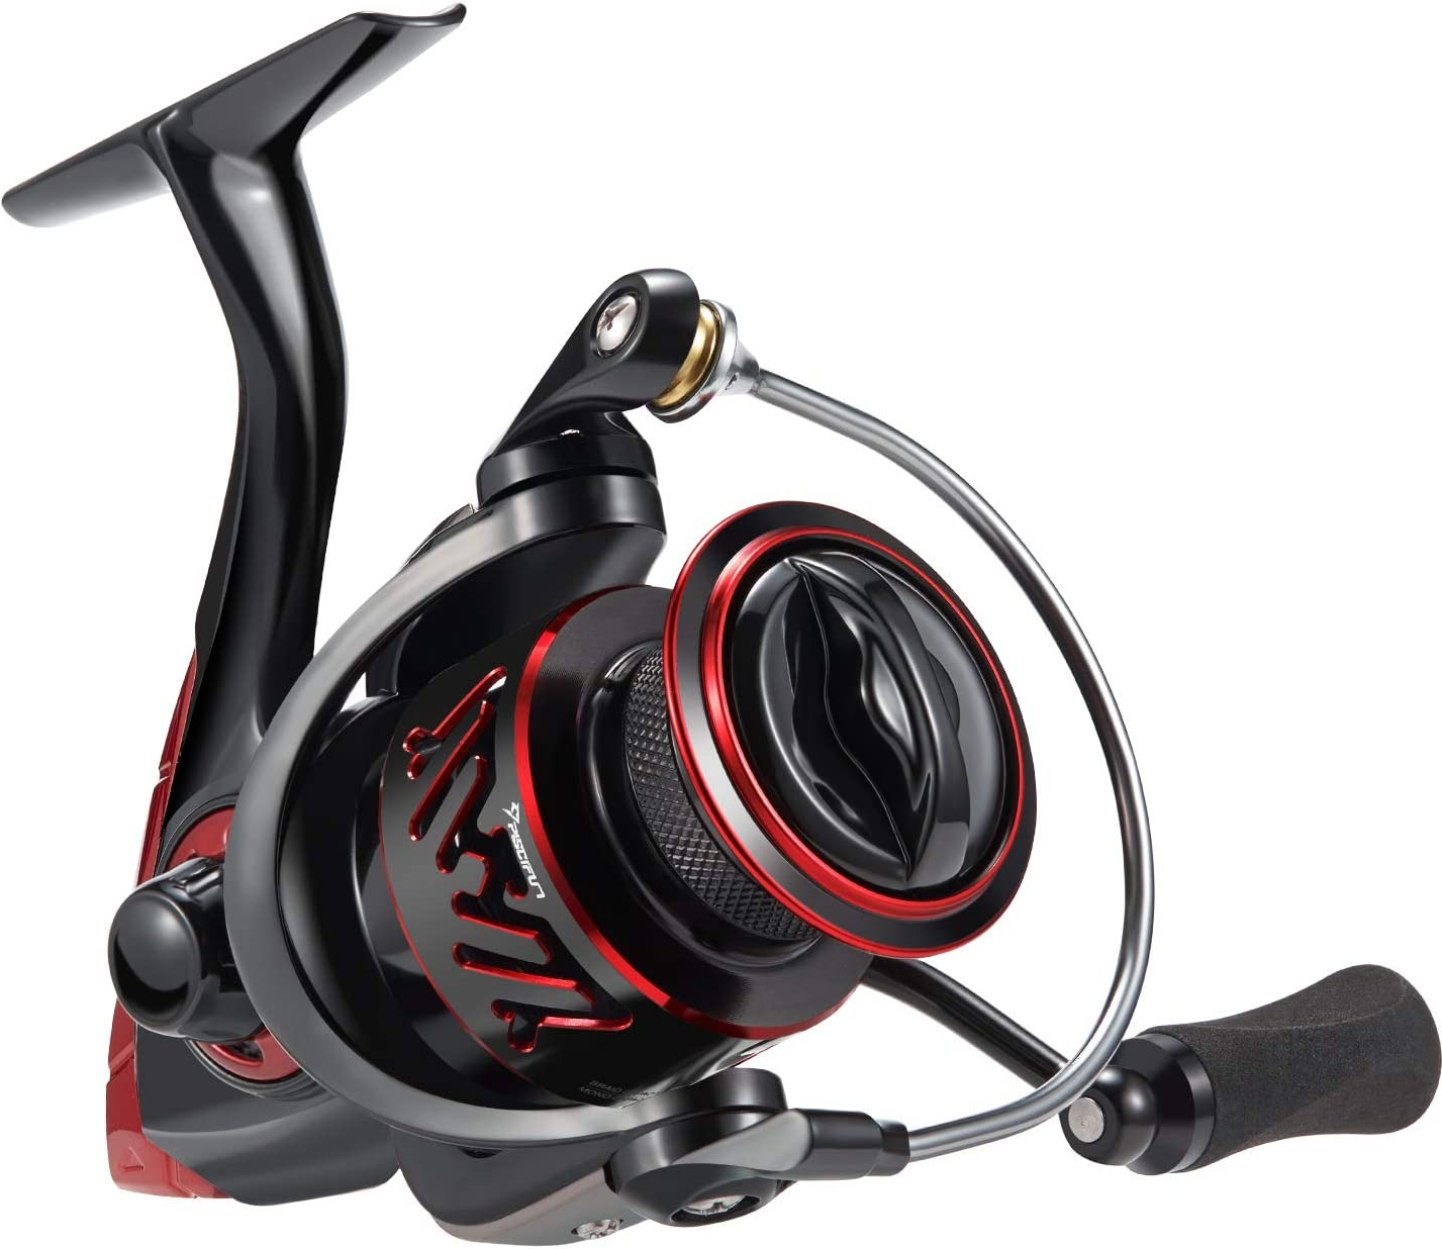 Piscifun Honor XT Spinning Reel review